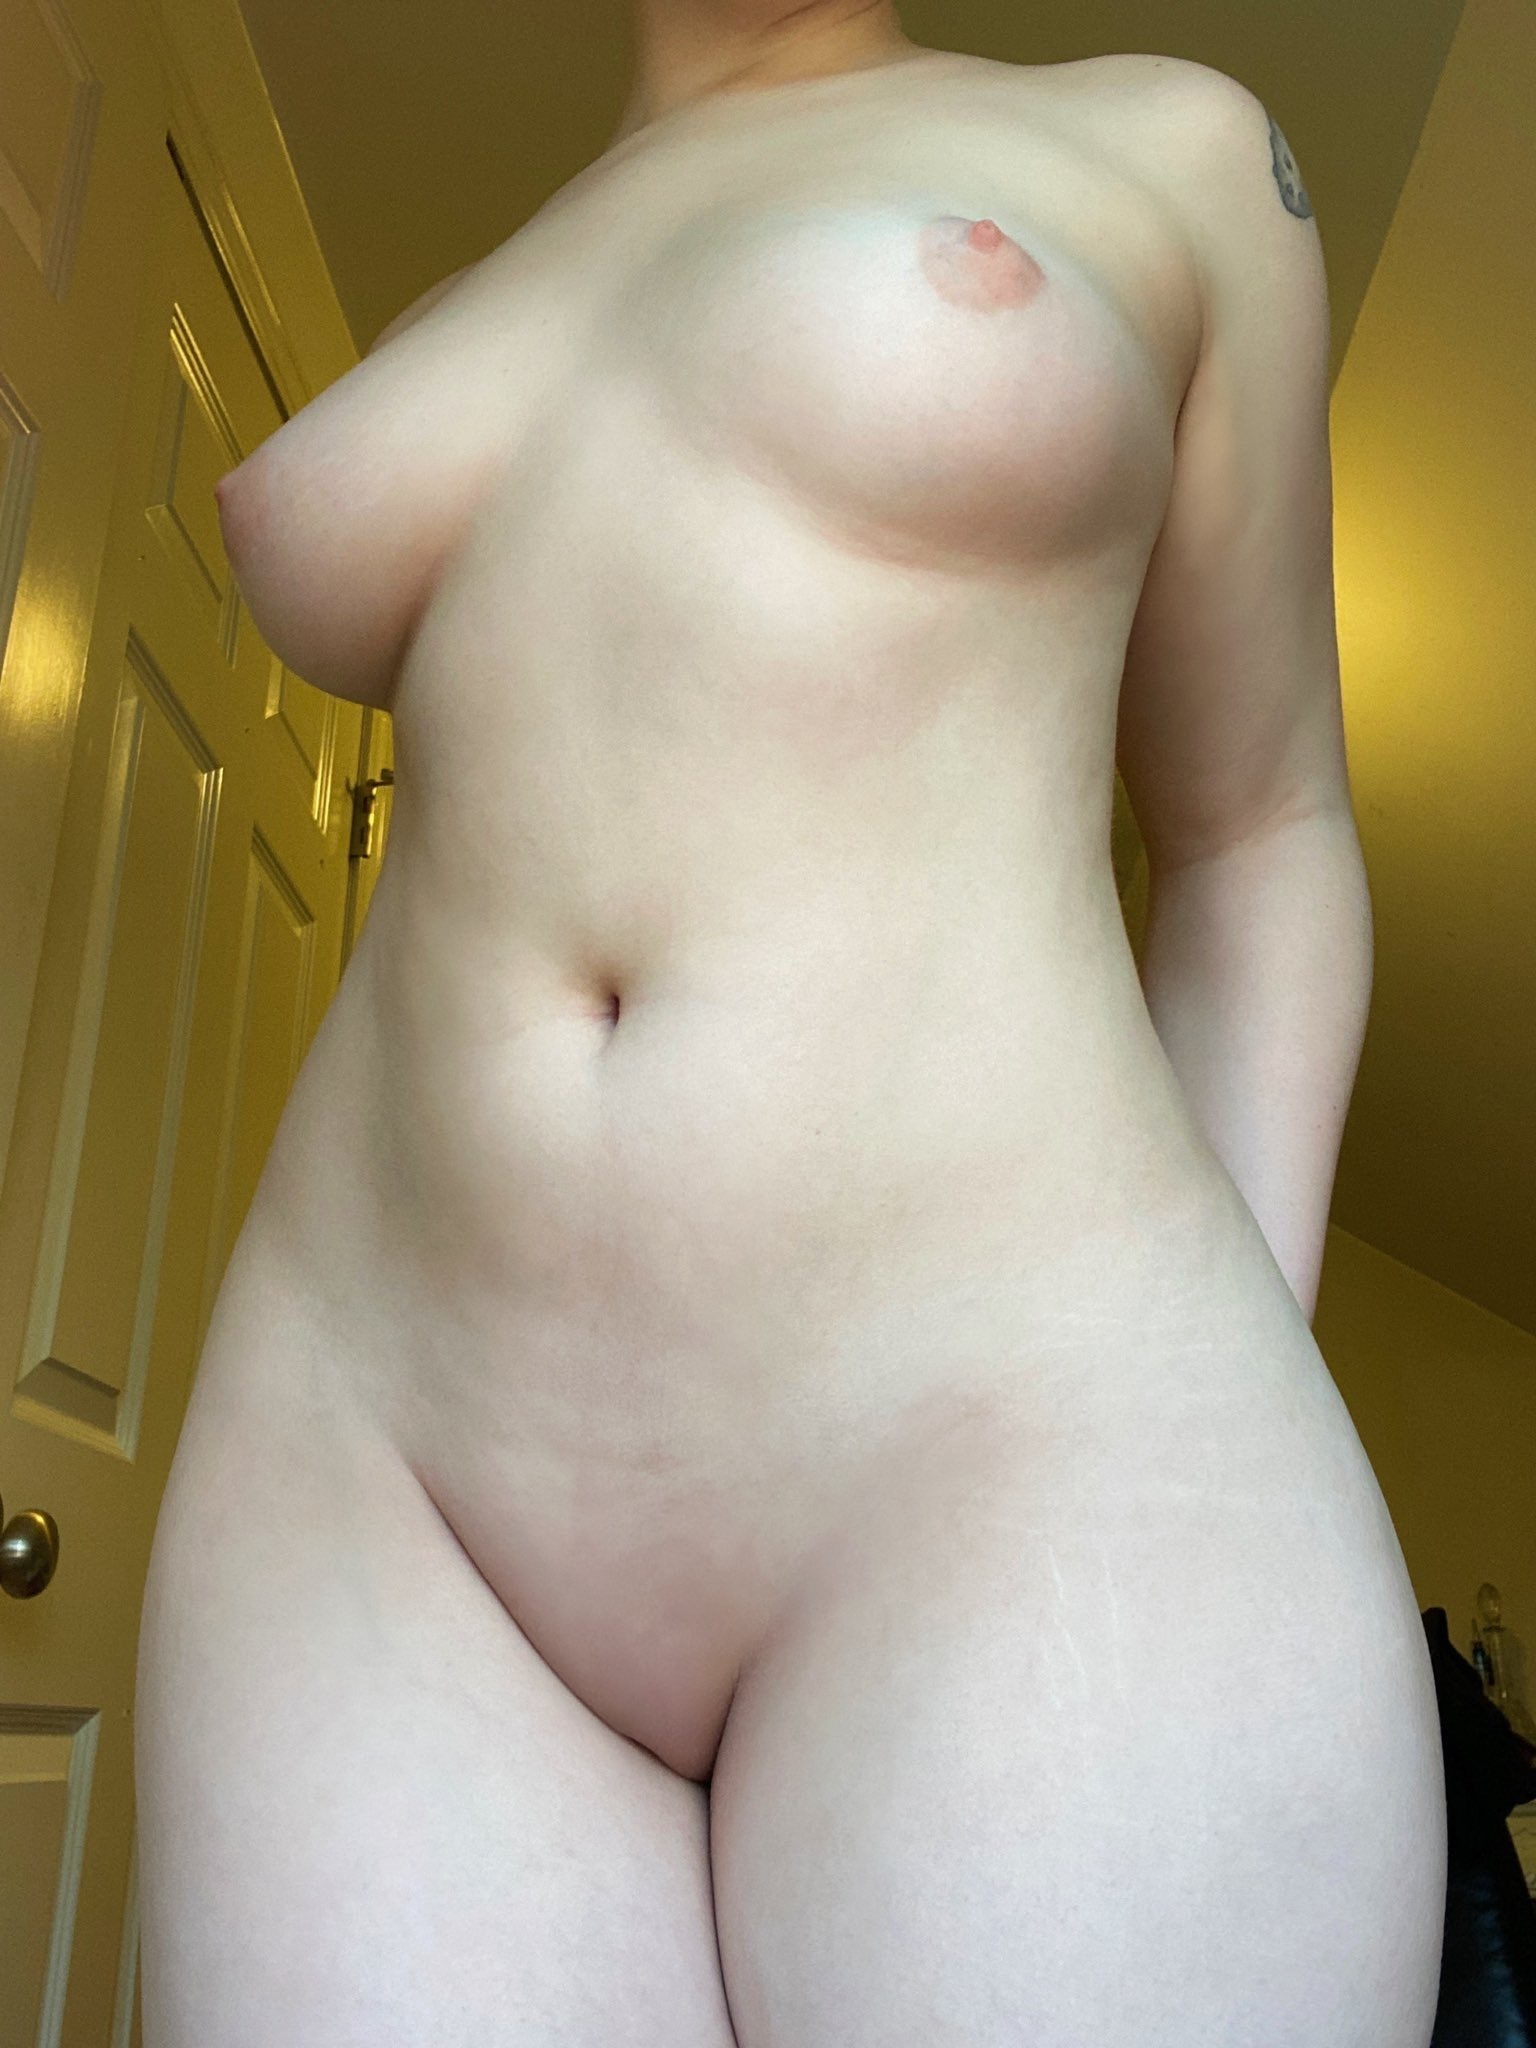 FULL VIDEO: Rosycheeksxo23 Nude Onlyfans Rosy Paradiso!